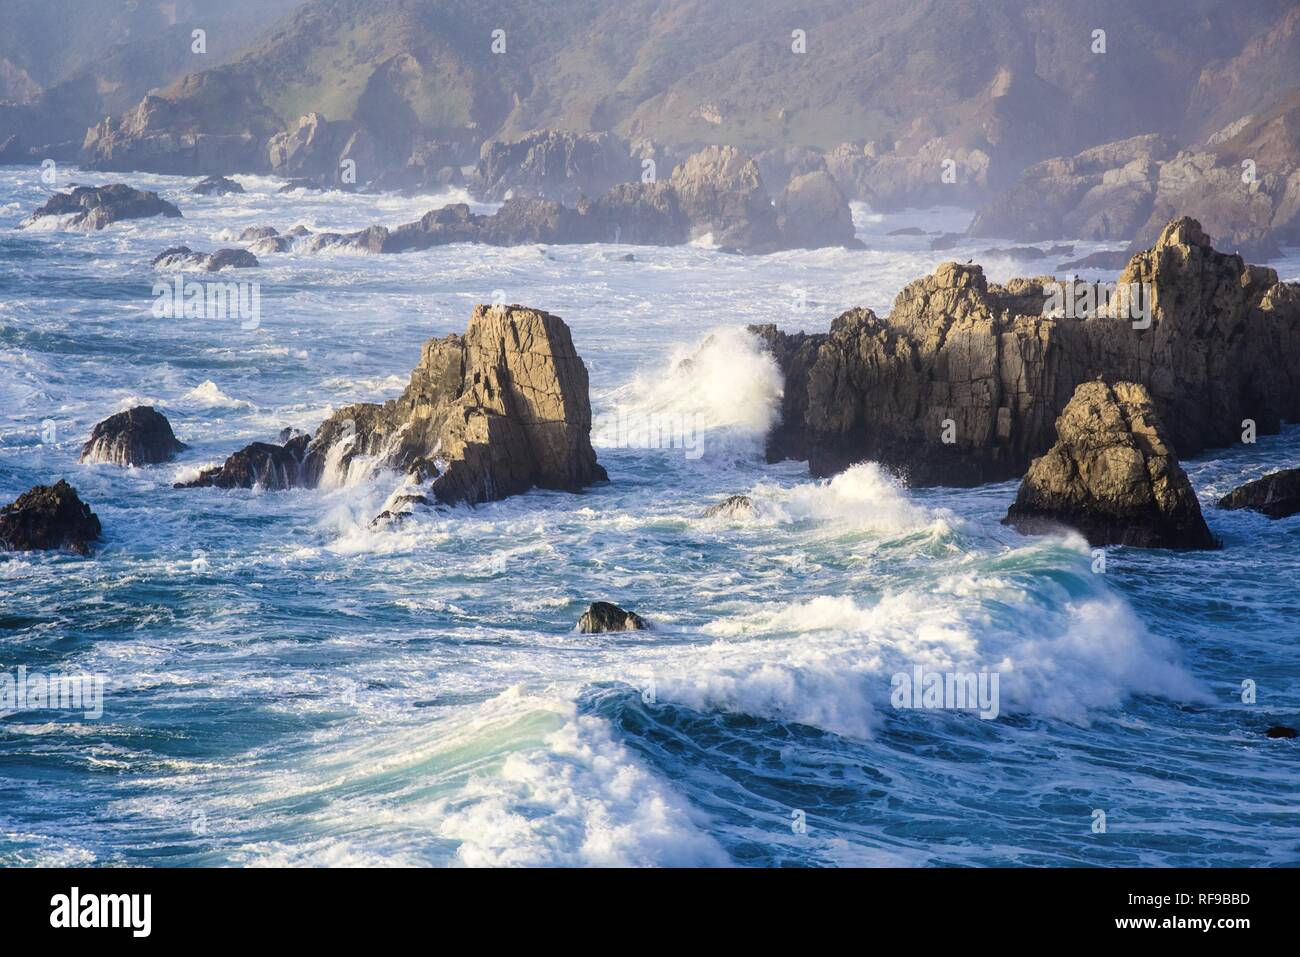 Crashing waves and rocky shores of the Monterey Peninsula. - Stock Image